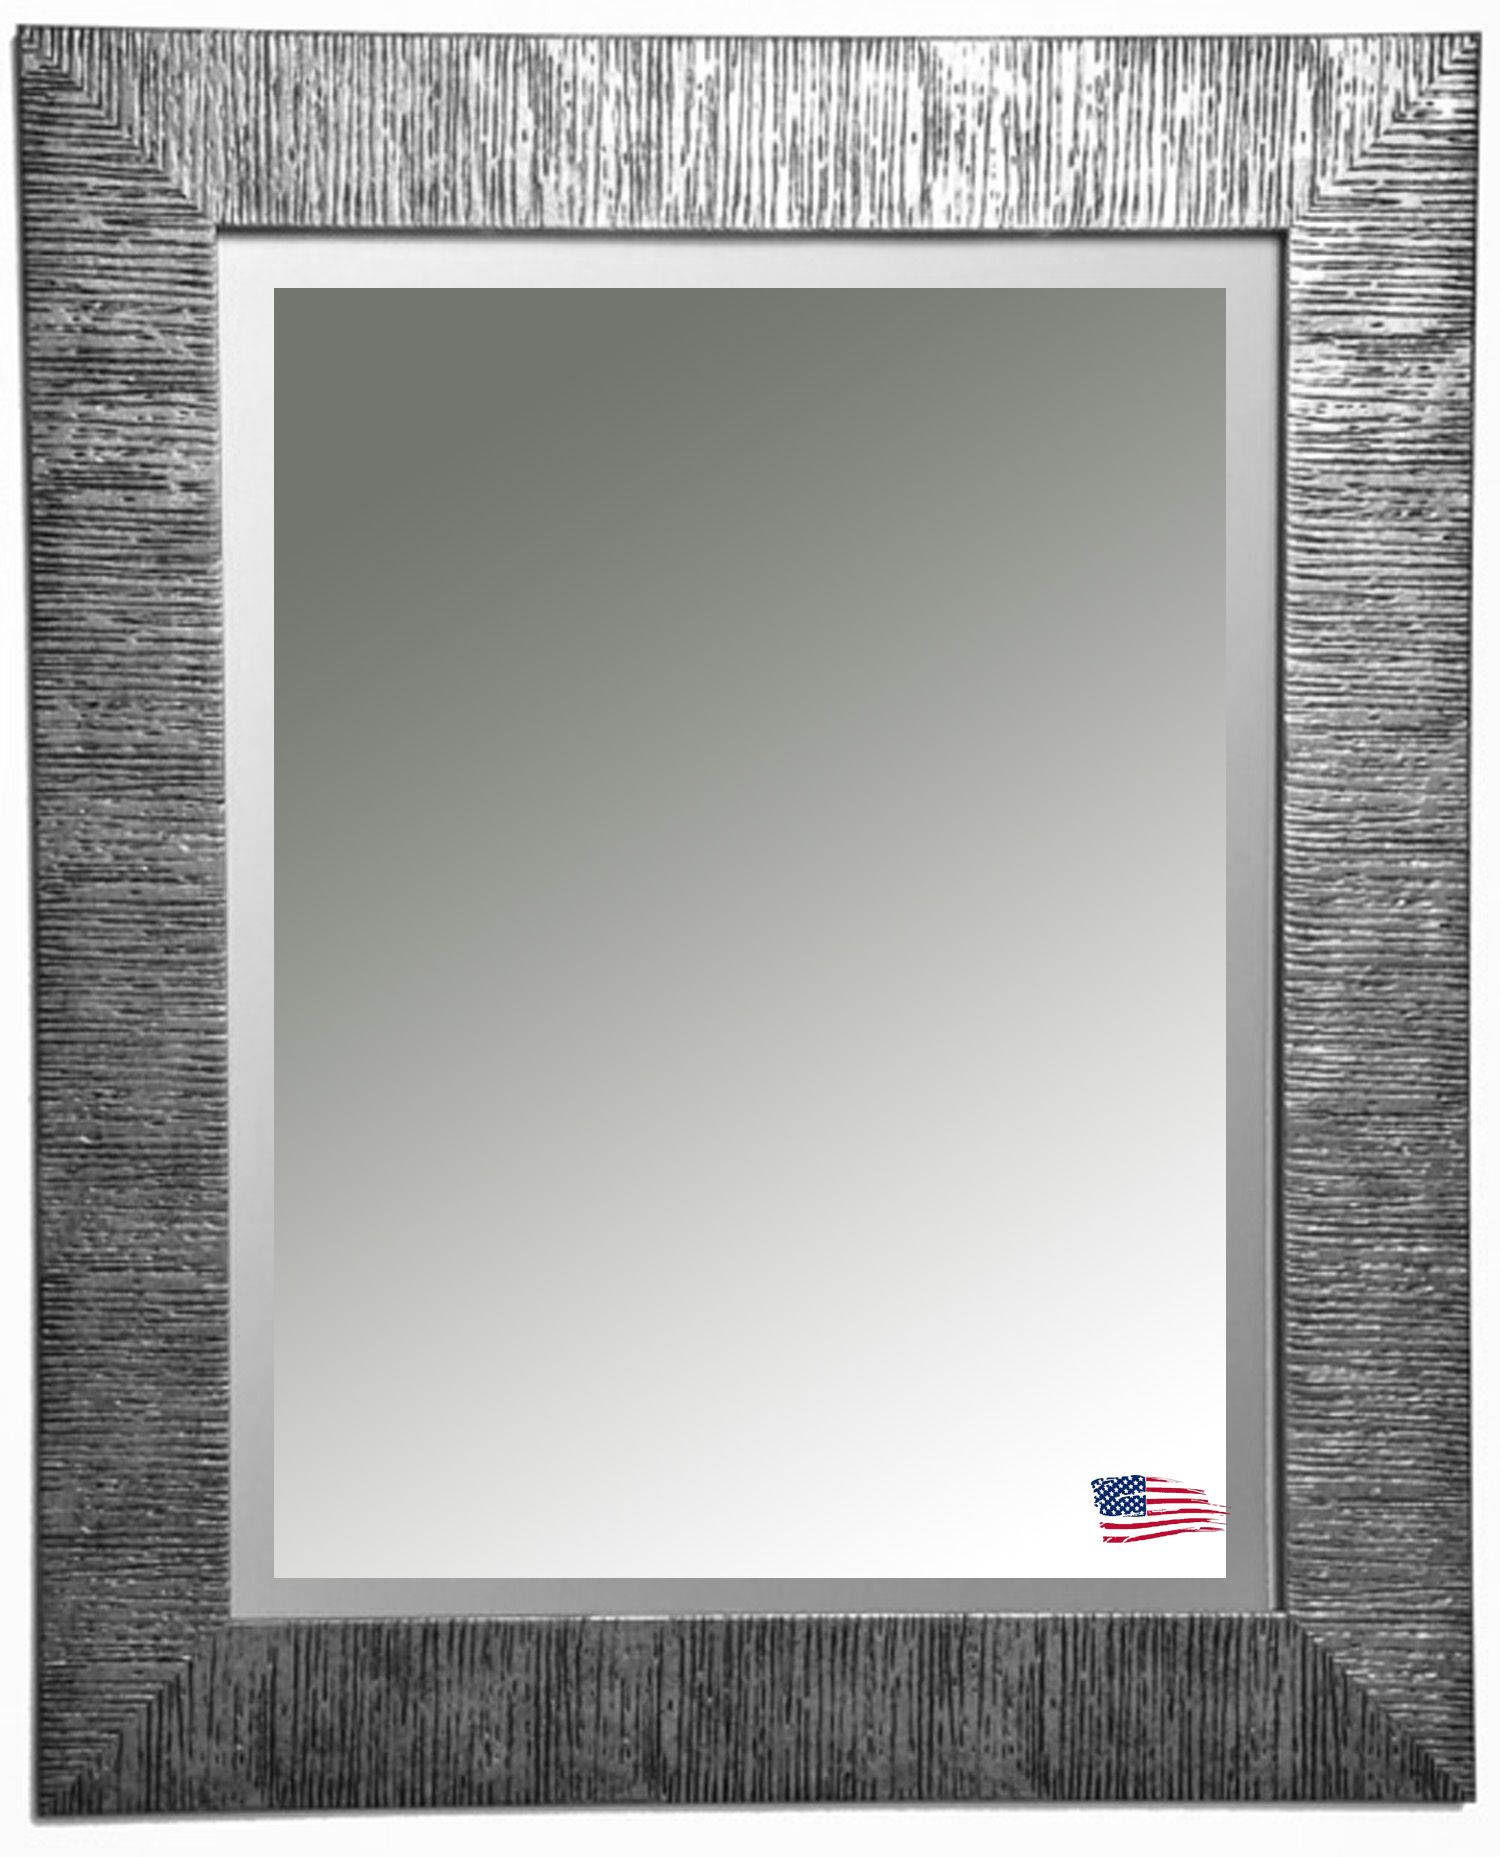 New style by Rayne Mirrors  Safari inspired silver textured wall mirror   Perfect accent piece. New style by Rayne Mirrors  Safari inspired silver textured wall